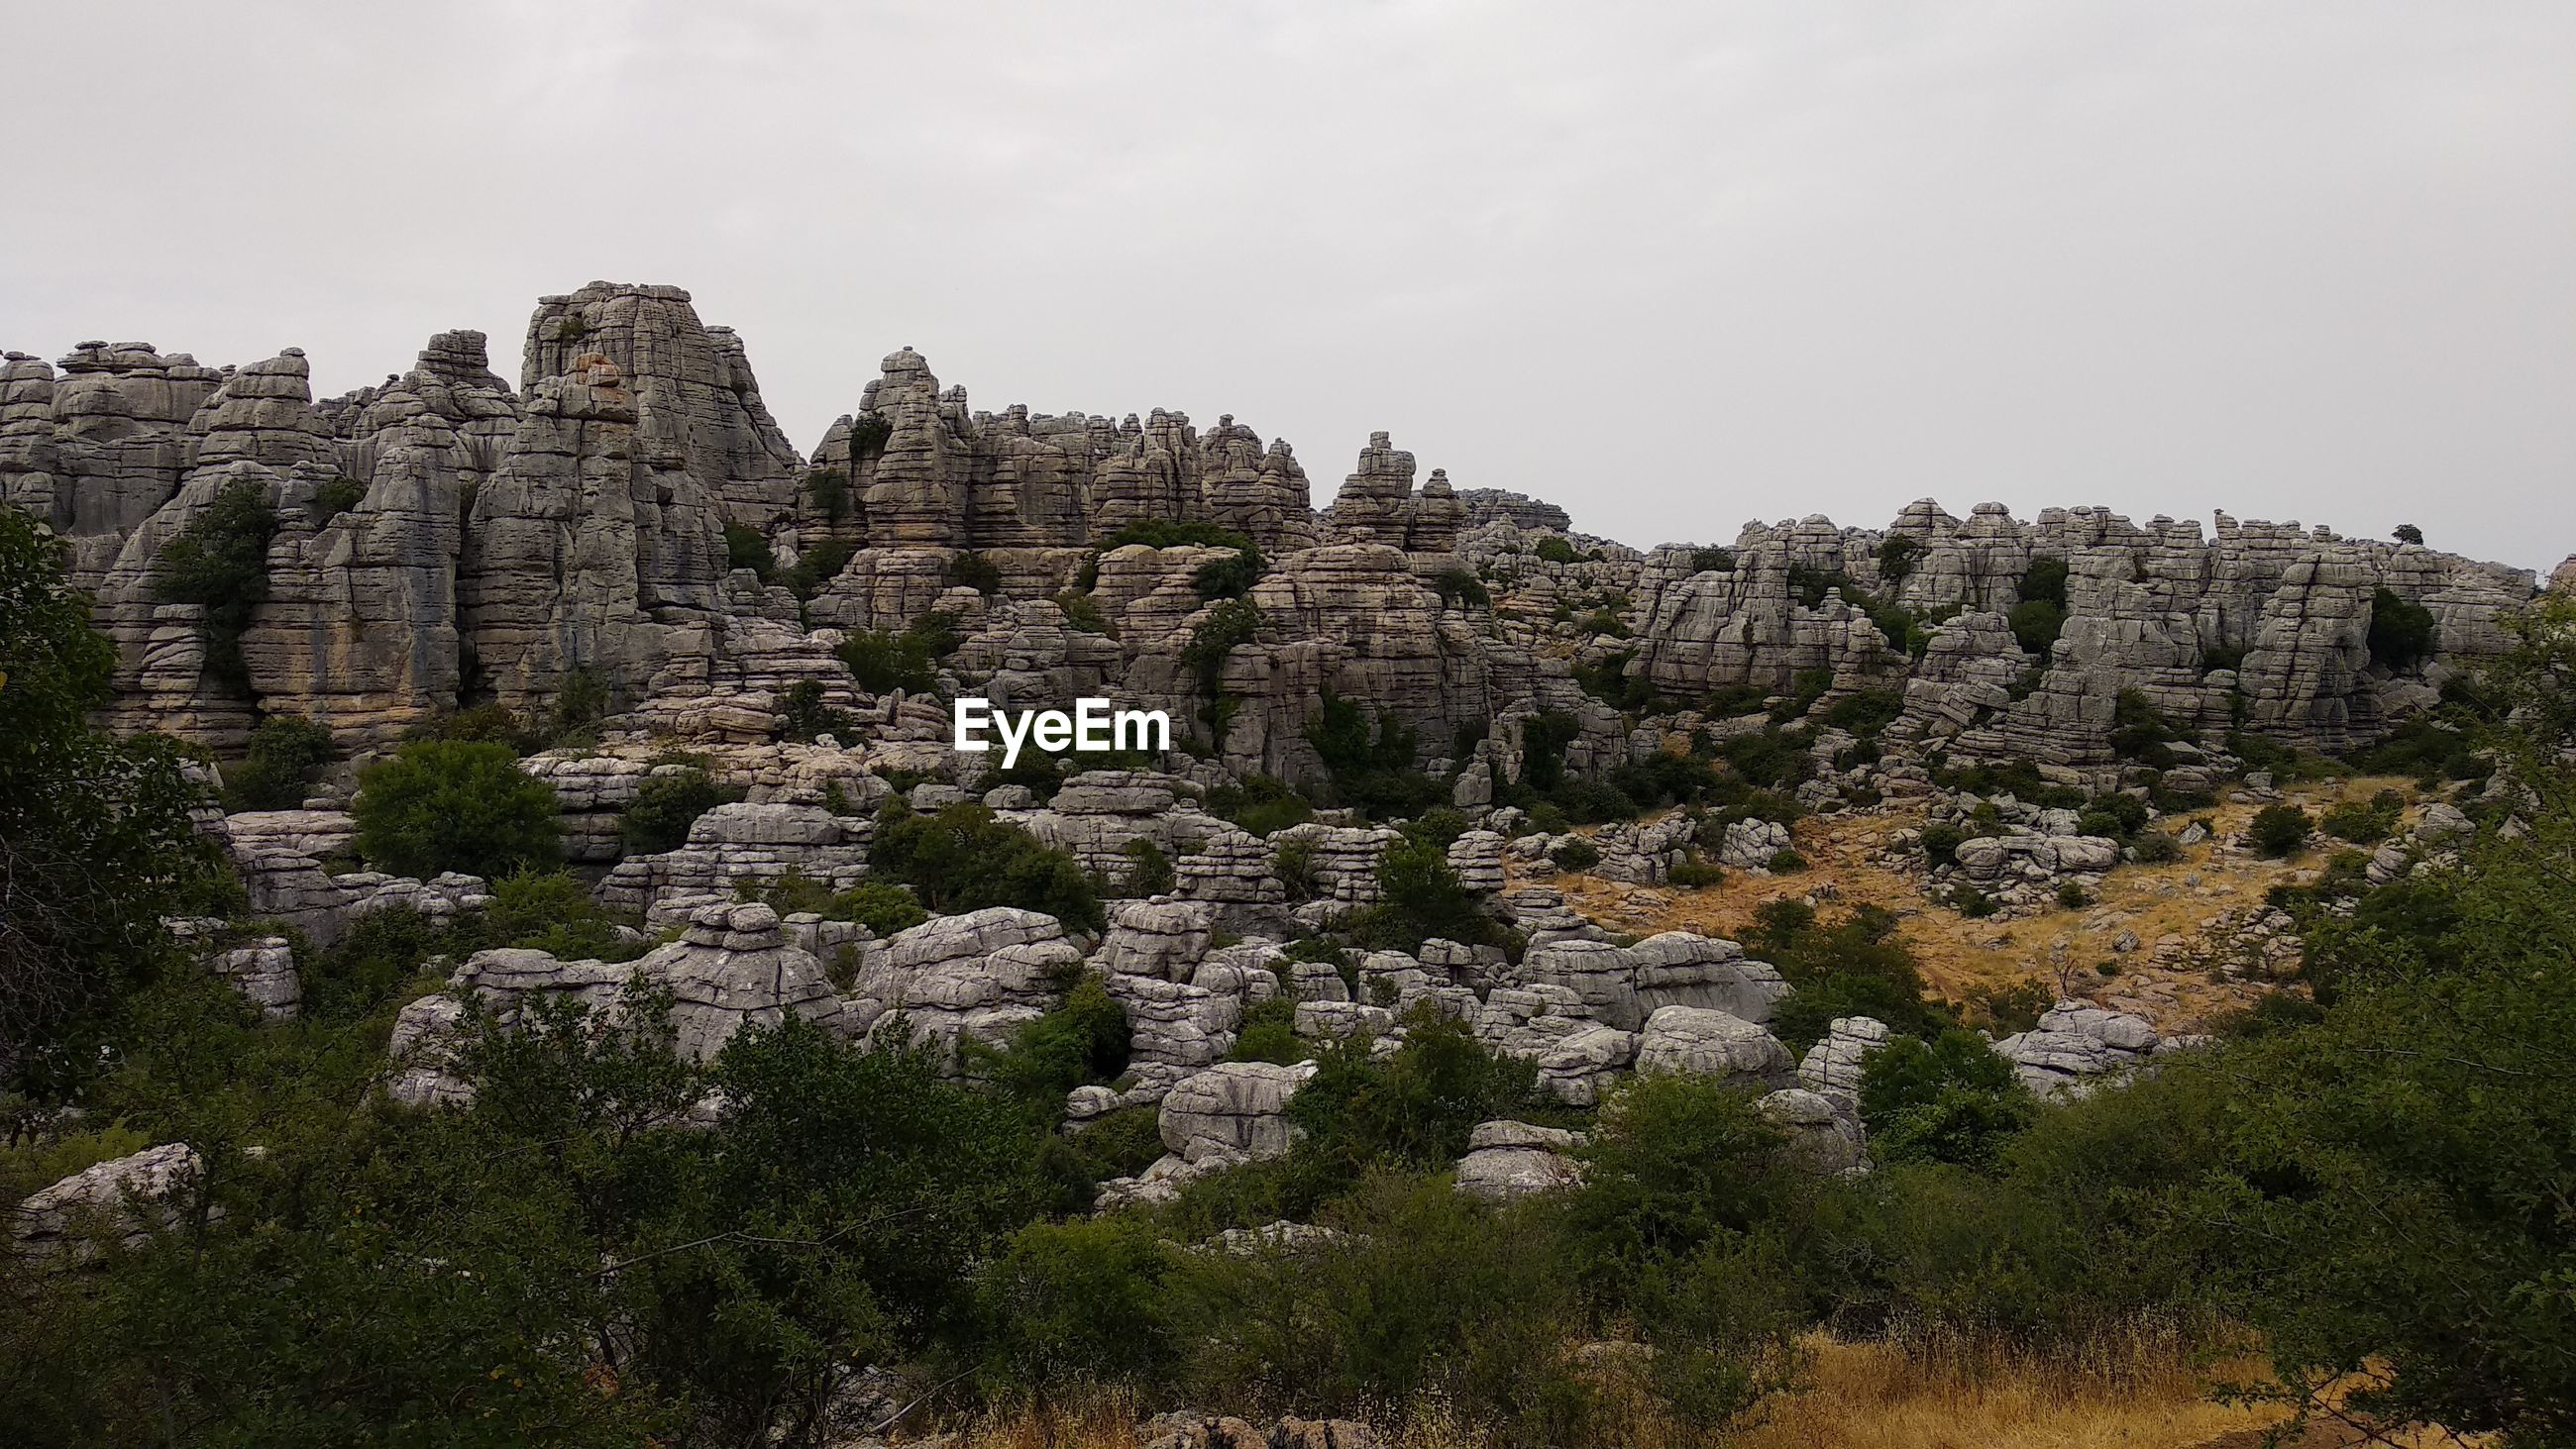 View of rocks and trees on landscape against clear sky